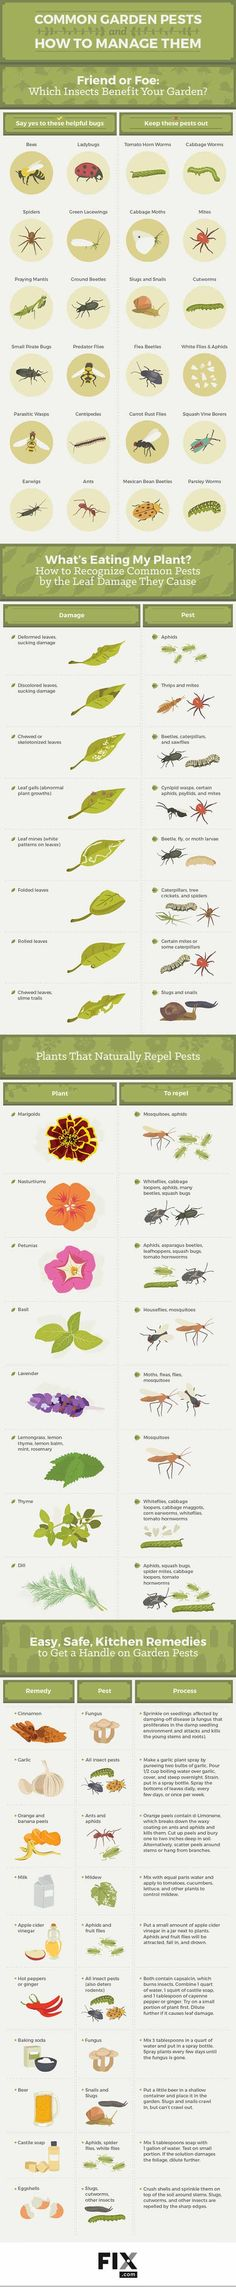 Common Garden Pests and How to Manage Them